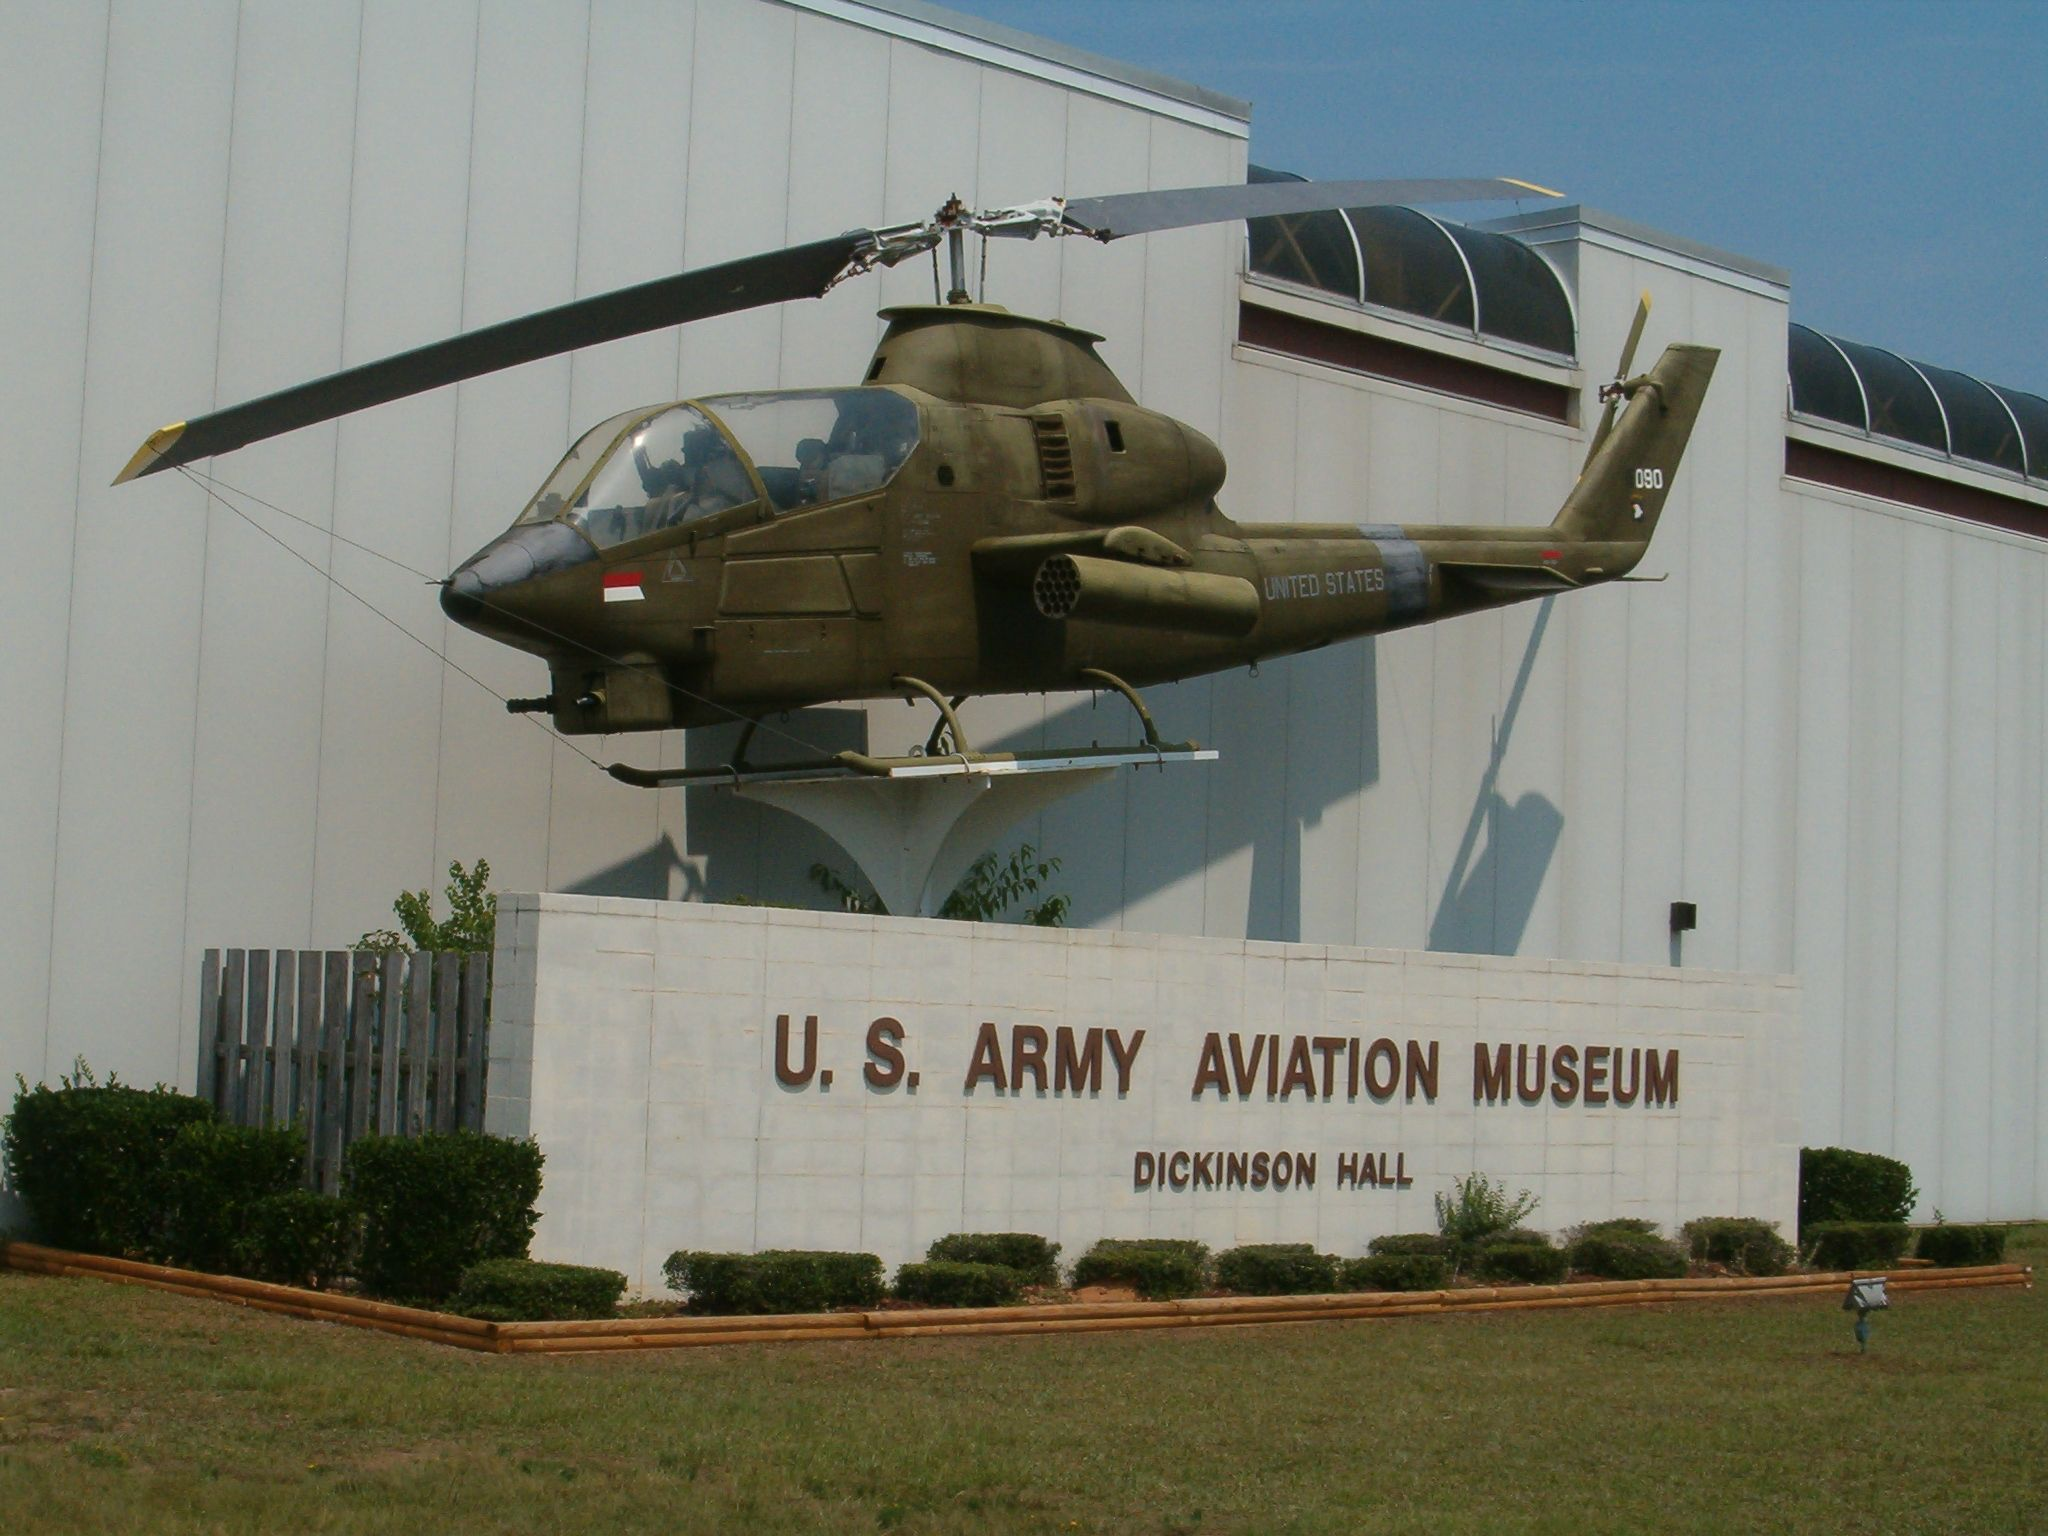 The U.S. Army Aviation Museum, Fort Rucker, AL